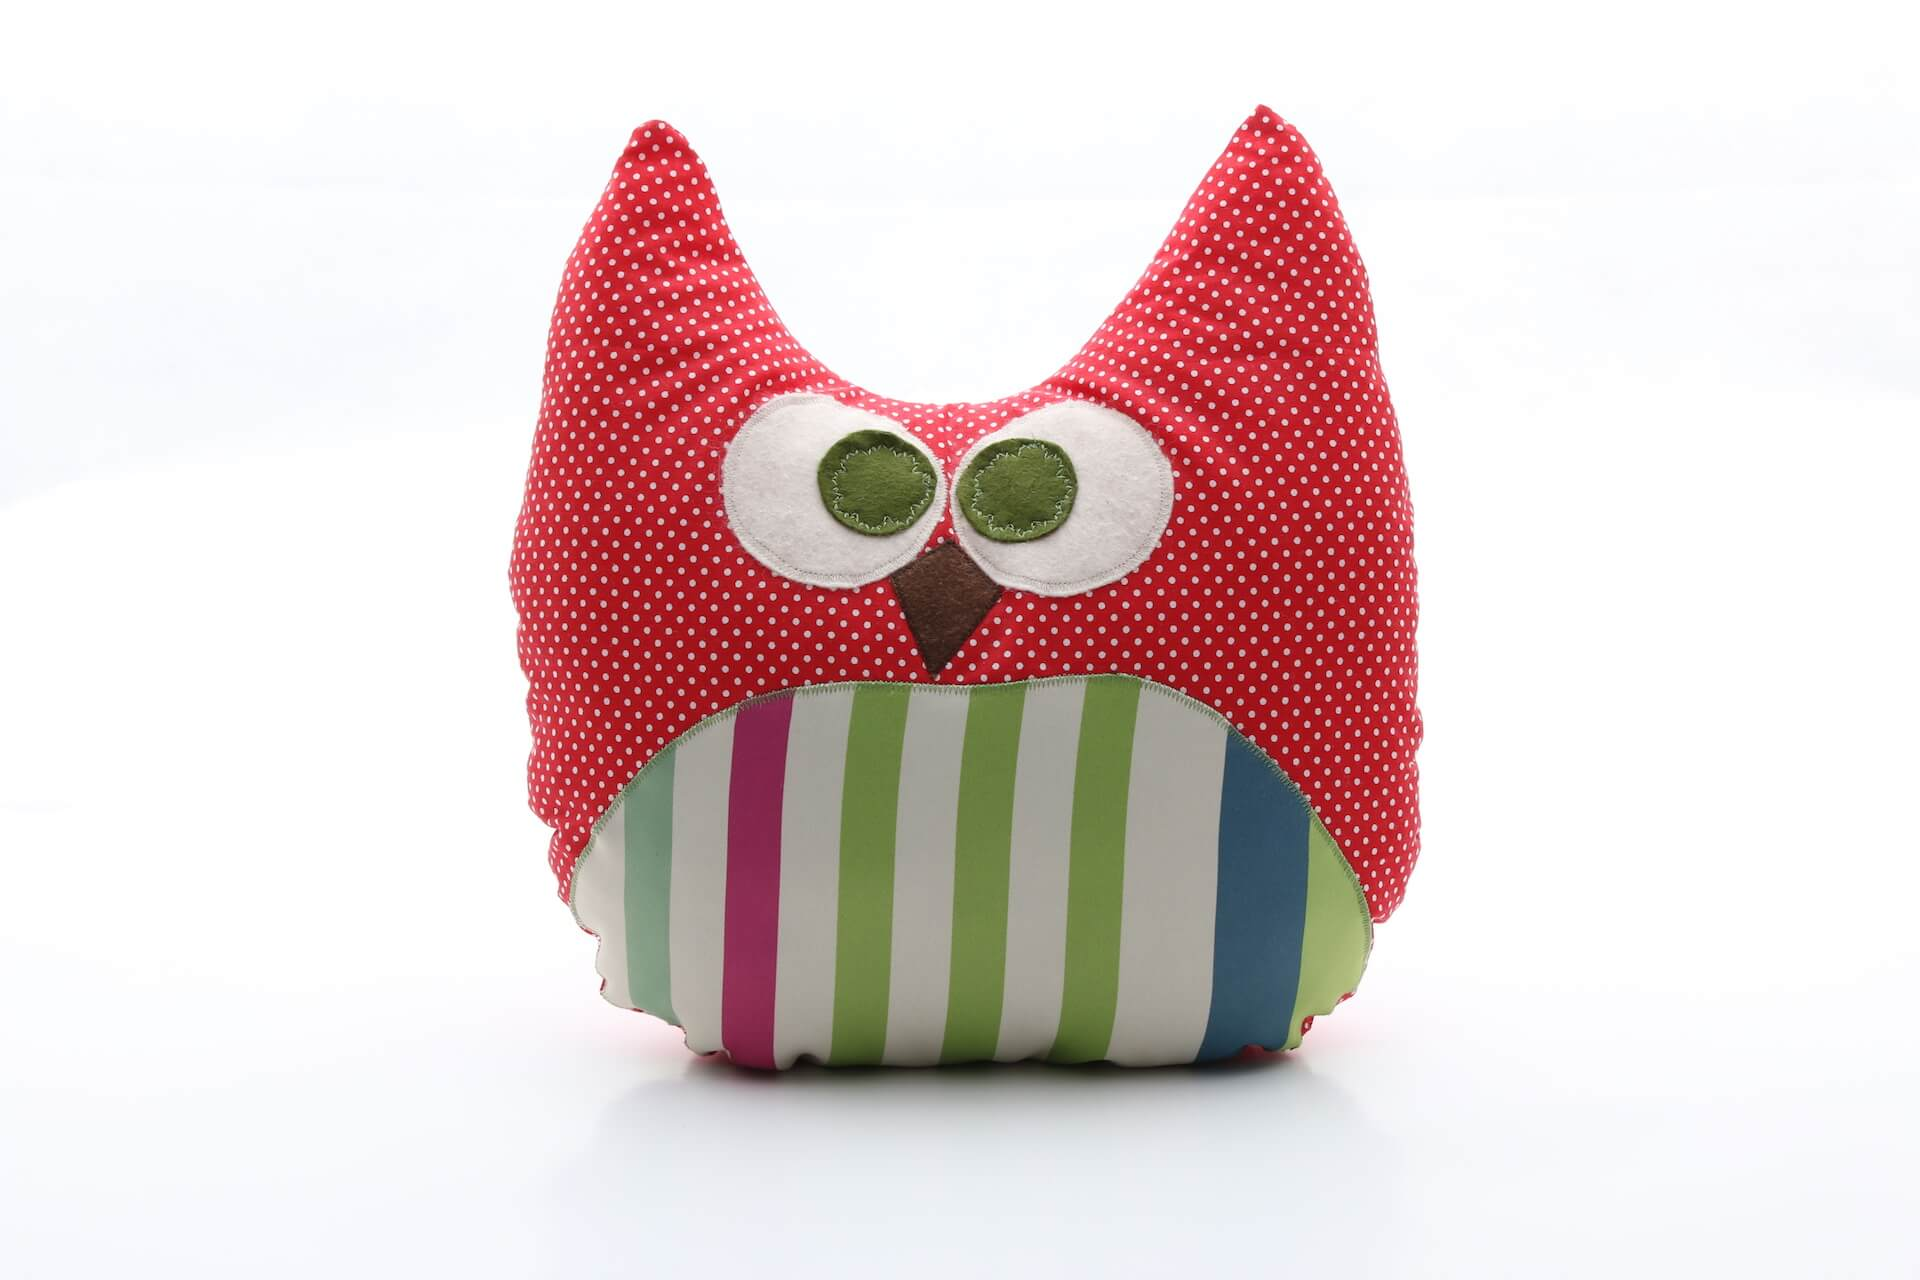 Handmade decorative Red Owl with striped design